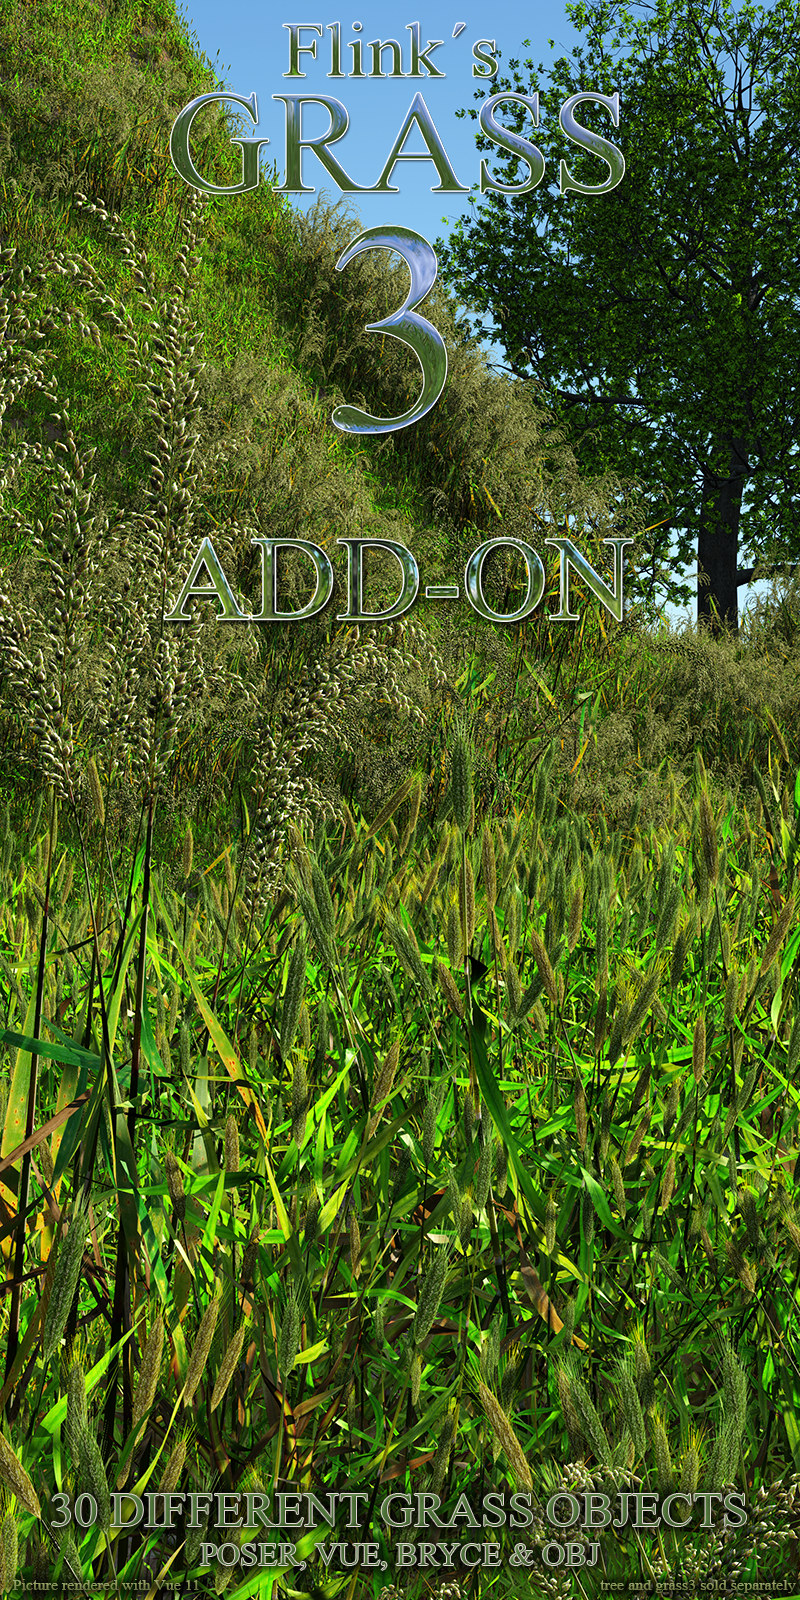 Flinks Grass 3 - Add-on